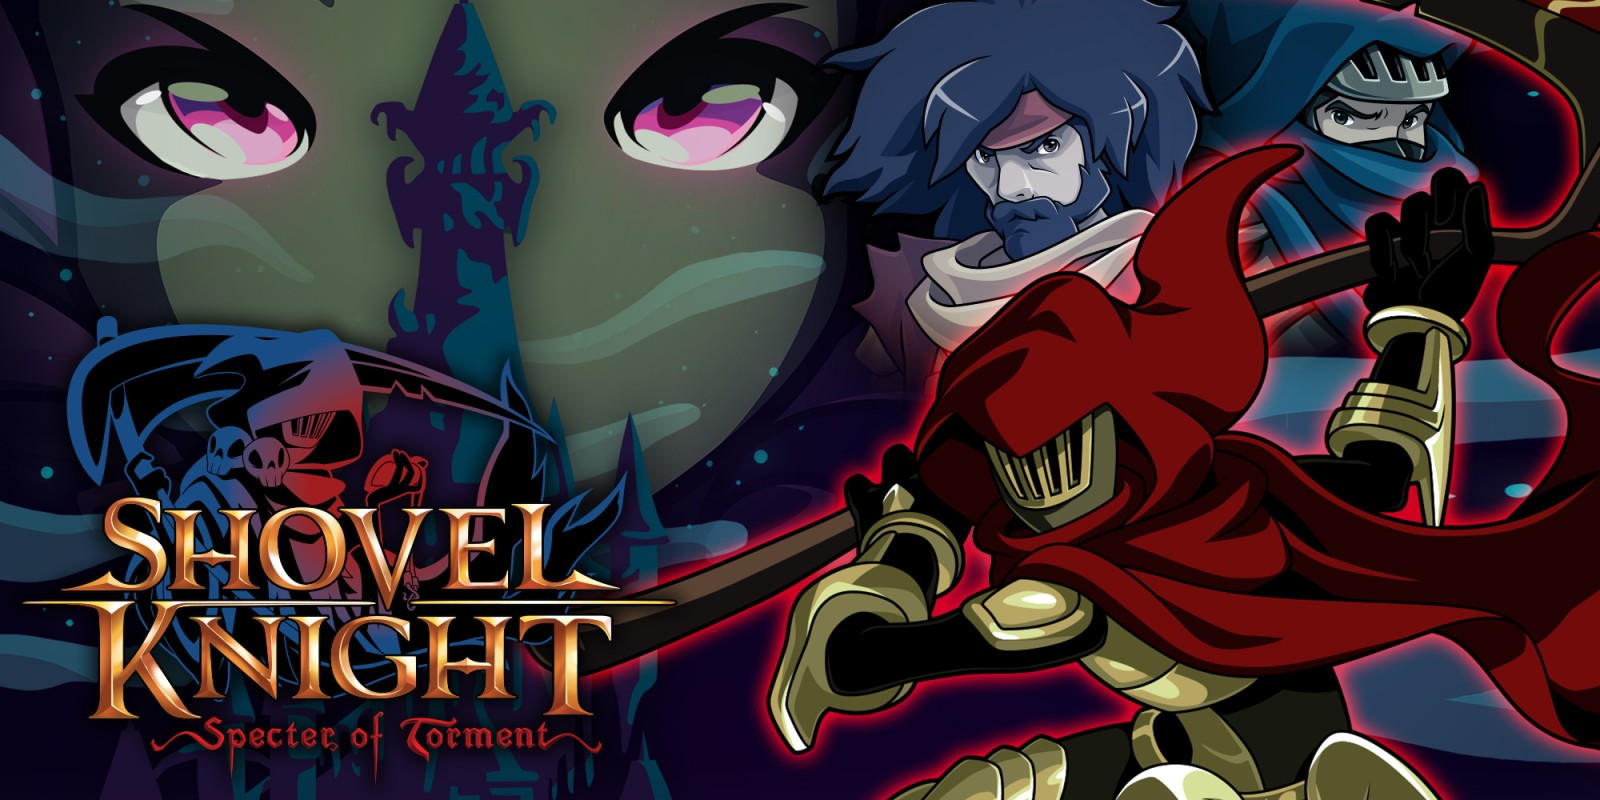 Shovel Knight Specter Of Torment Programas Descargables